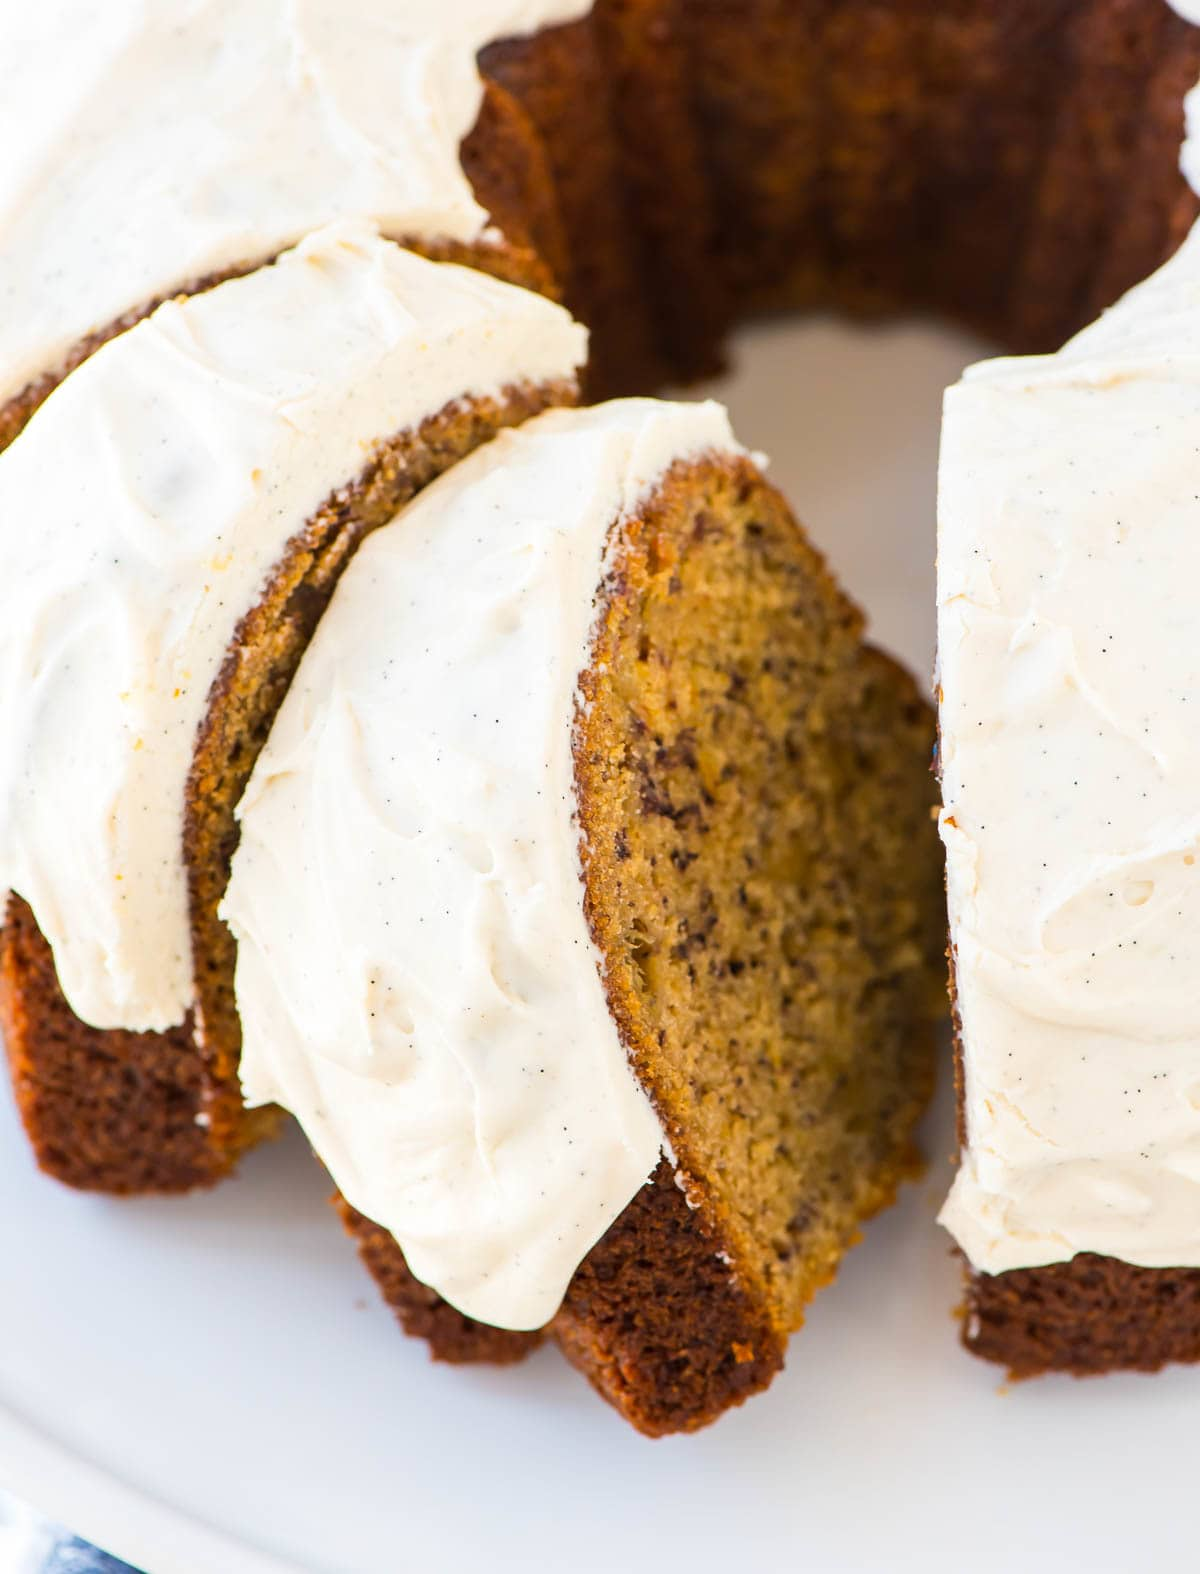 Healthy Banana Bundt Cake recipe made with Greek yogurt. Simple and easy recipe that's perfect for using up ripe bananas! Recipe at wellplated.com | @wellplated